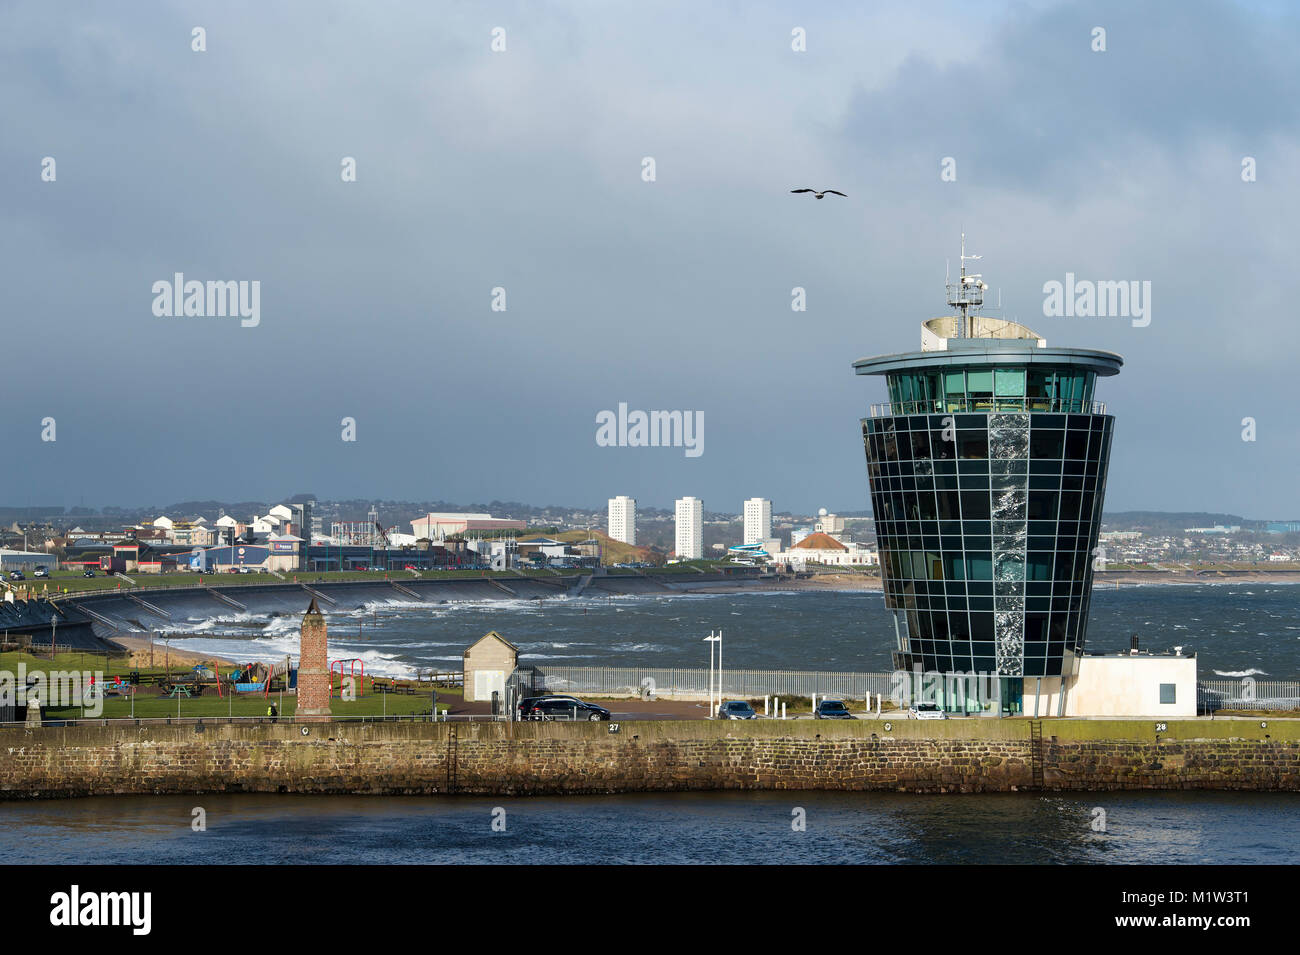 Harbour master's control tower at the entrance to port with beach on North Sea coast. Aberdeen, Aberdeenshire, - Stock Image